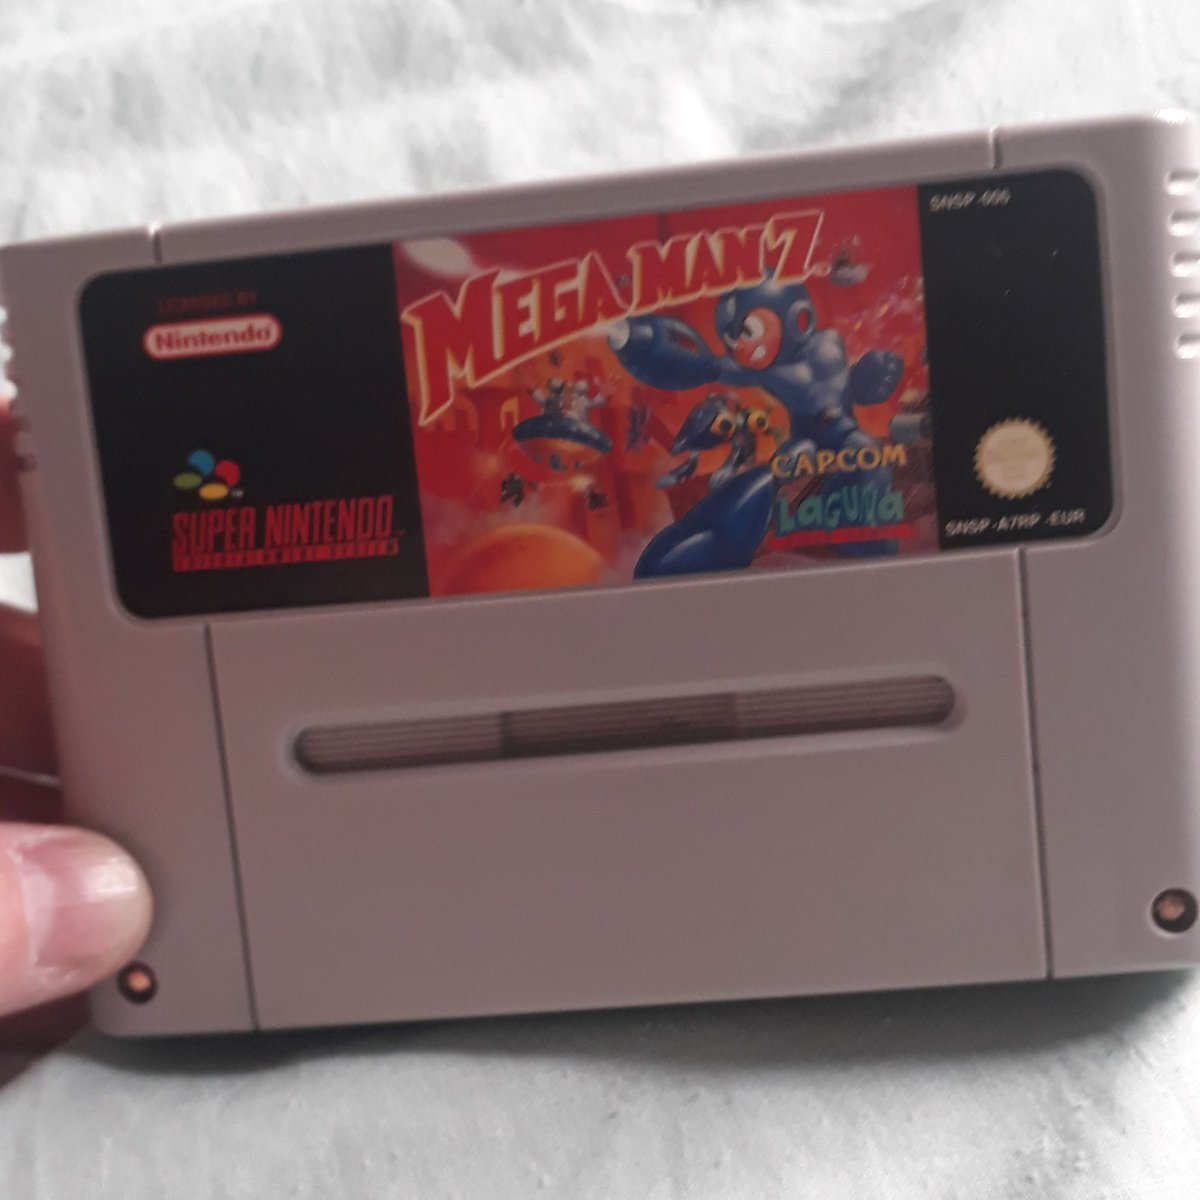 Happy #SNESFriday. Sorry I haven't really been around as much. Just getting ready to move home 😁  For the meantime, here's my entry for #MegaManWeek. https://t.co/qsid4s3fB7